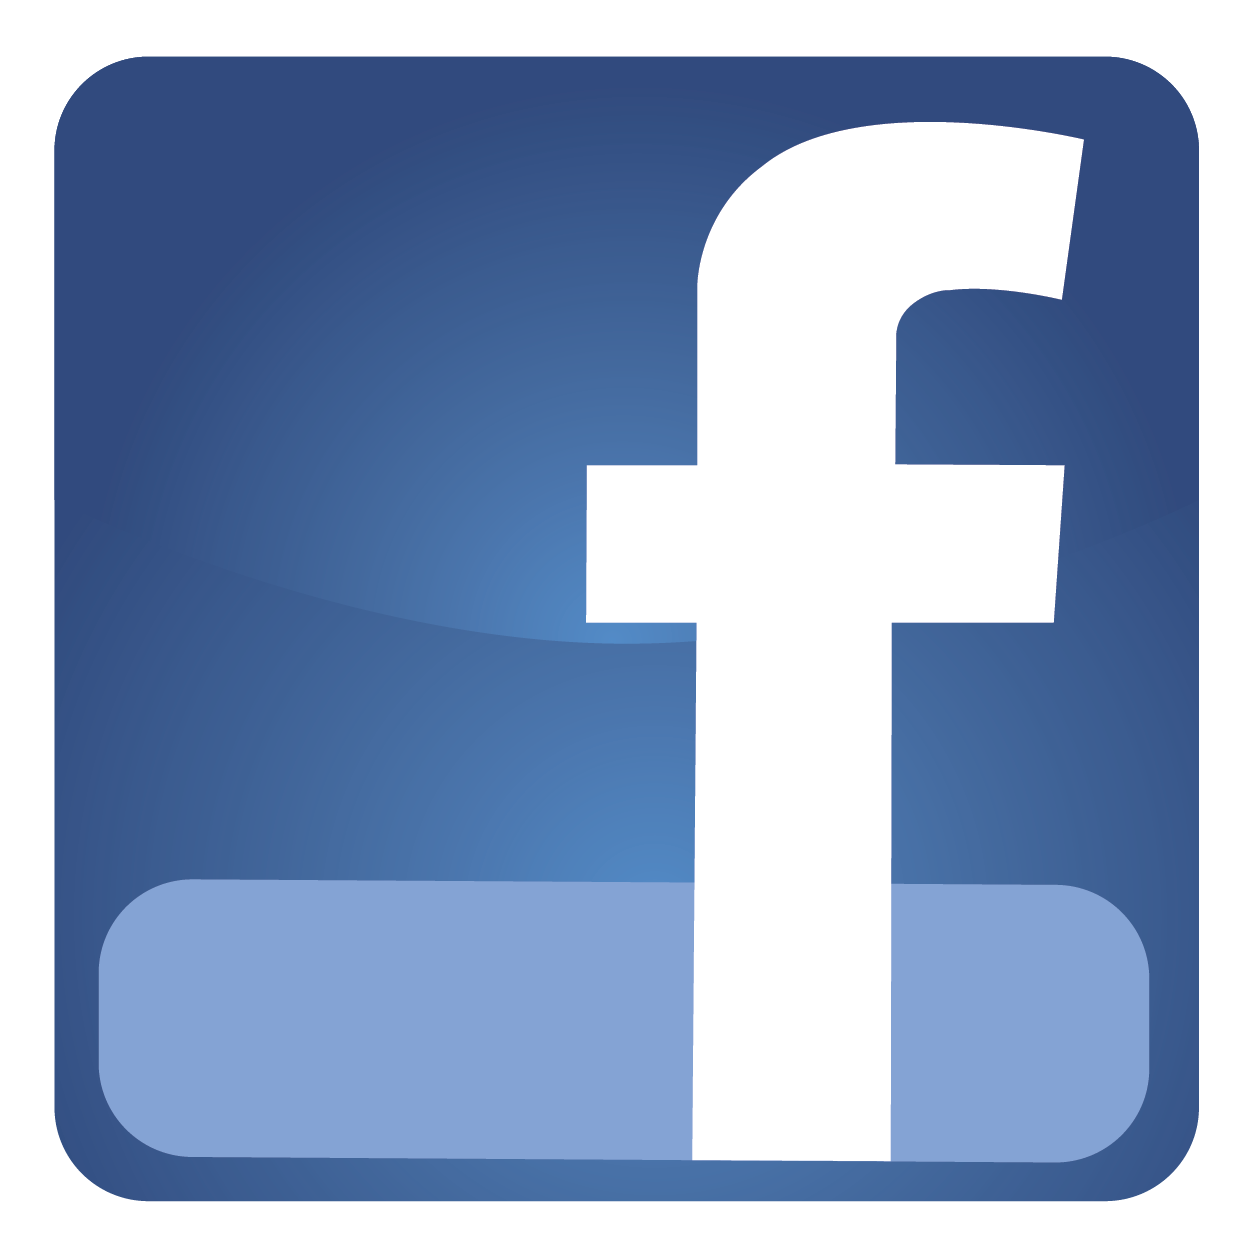 For more great resources on God's existence, science and faith issues, the Resurrection of Jesus, morality and politics, theology and apologetics, follow Faithful Thinkers on Facebook.